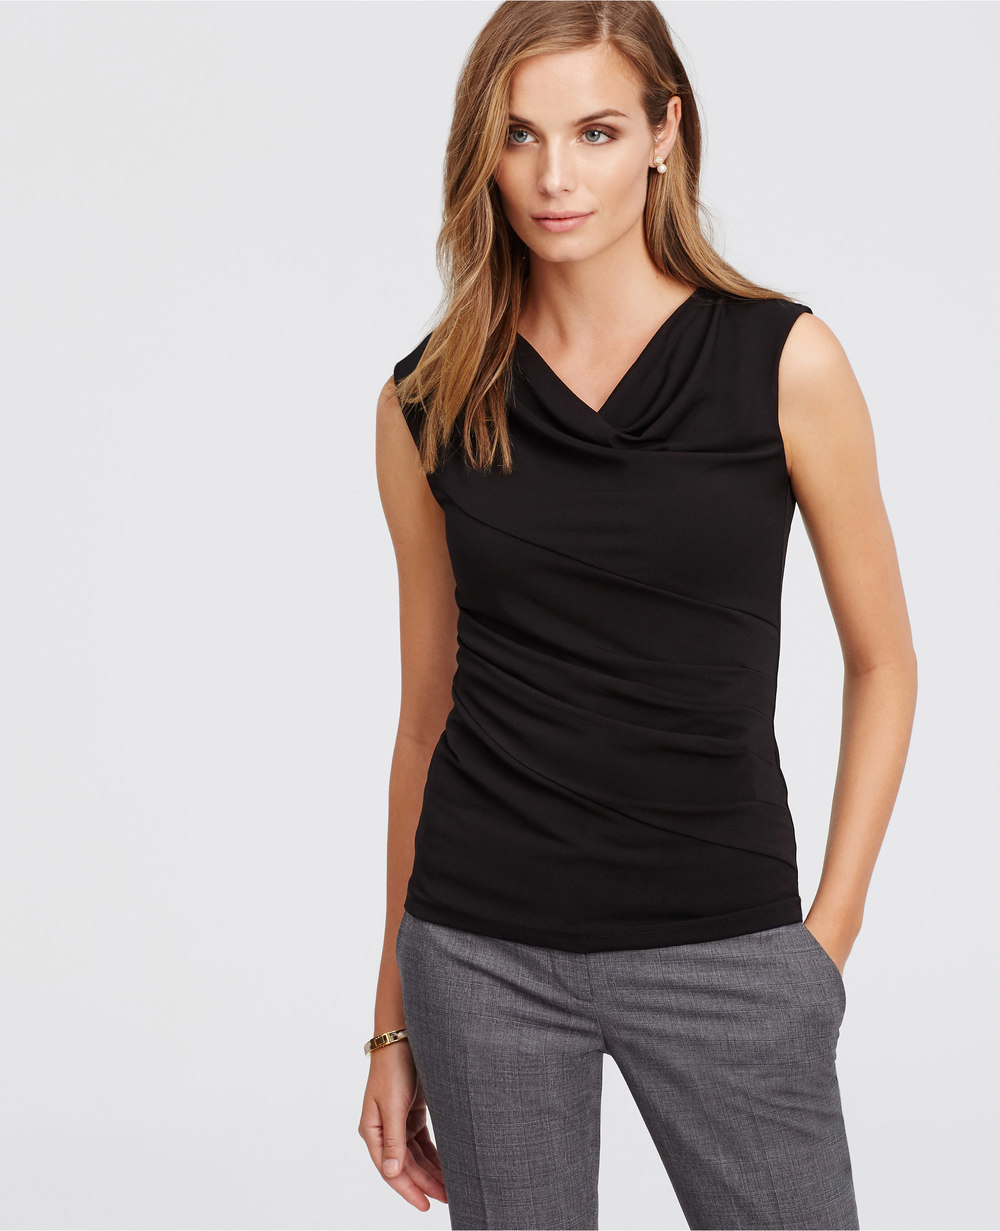 Petite Crepe Drape Neck Top. Available in black. Ann Taylor. $49.